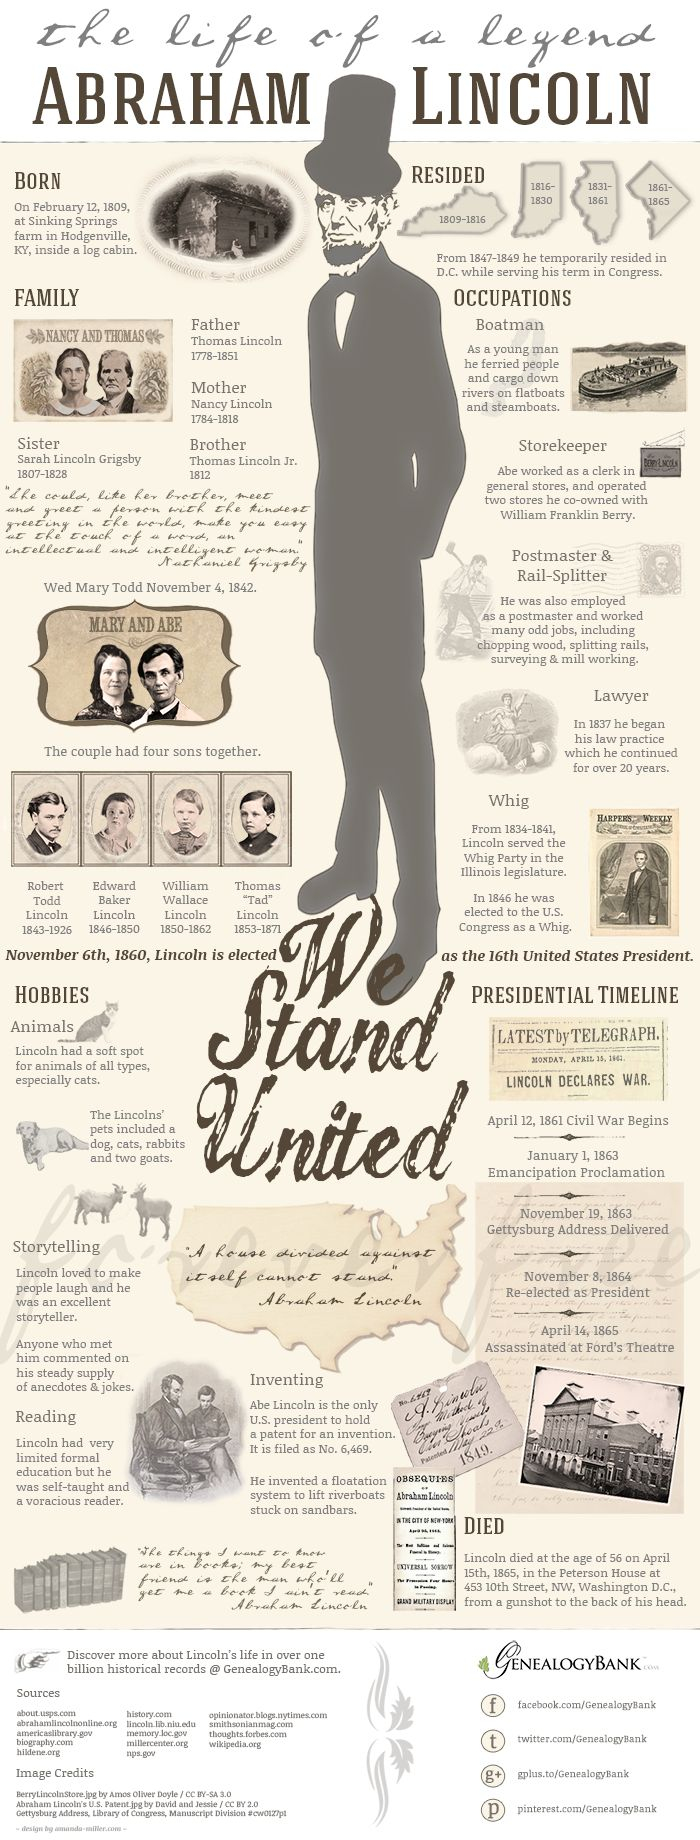 The Life of a Legend: Abraham Lincoln Infographic.   Get details about Abraham Lincoln's genealogy & family tree, discover facts about his life & more in this Infographic from GenealogyBank.com.